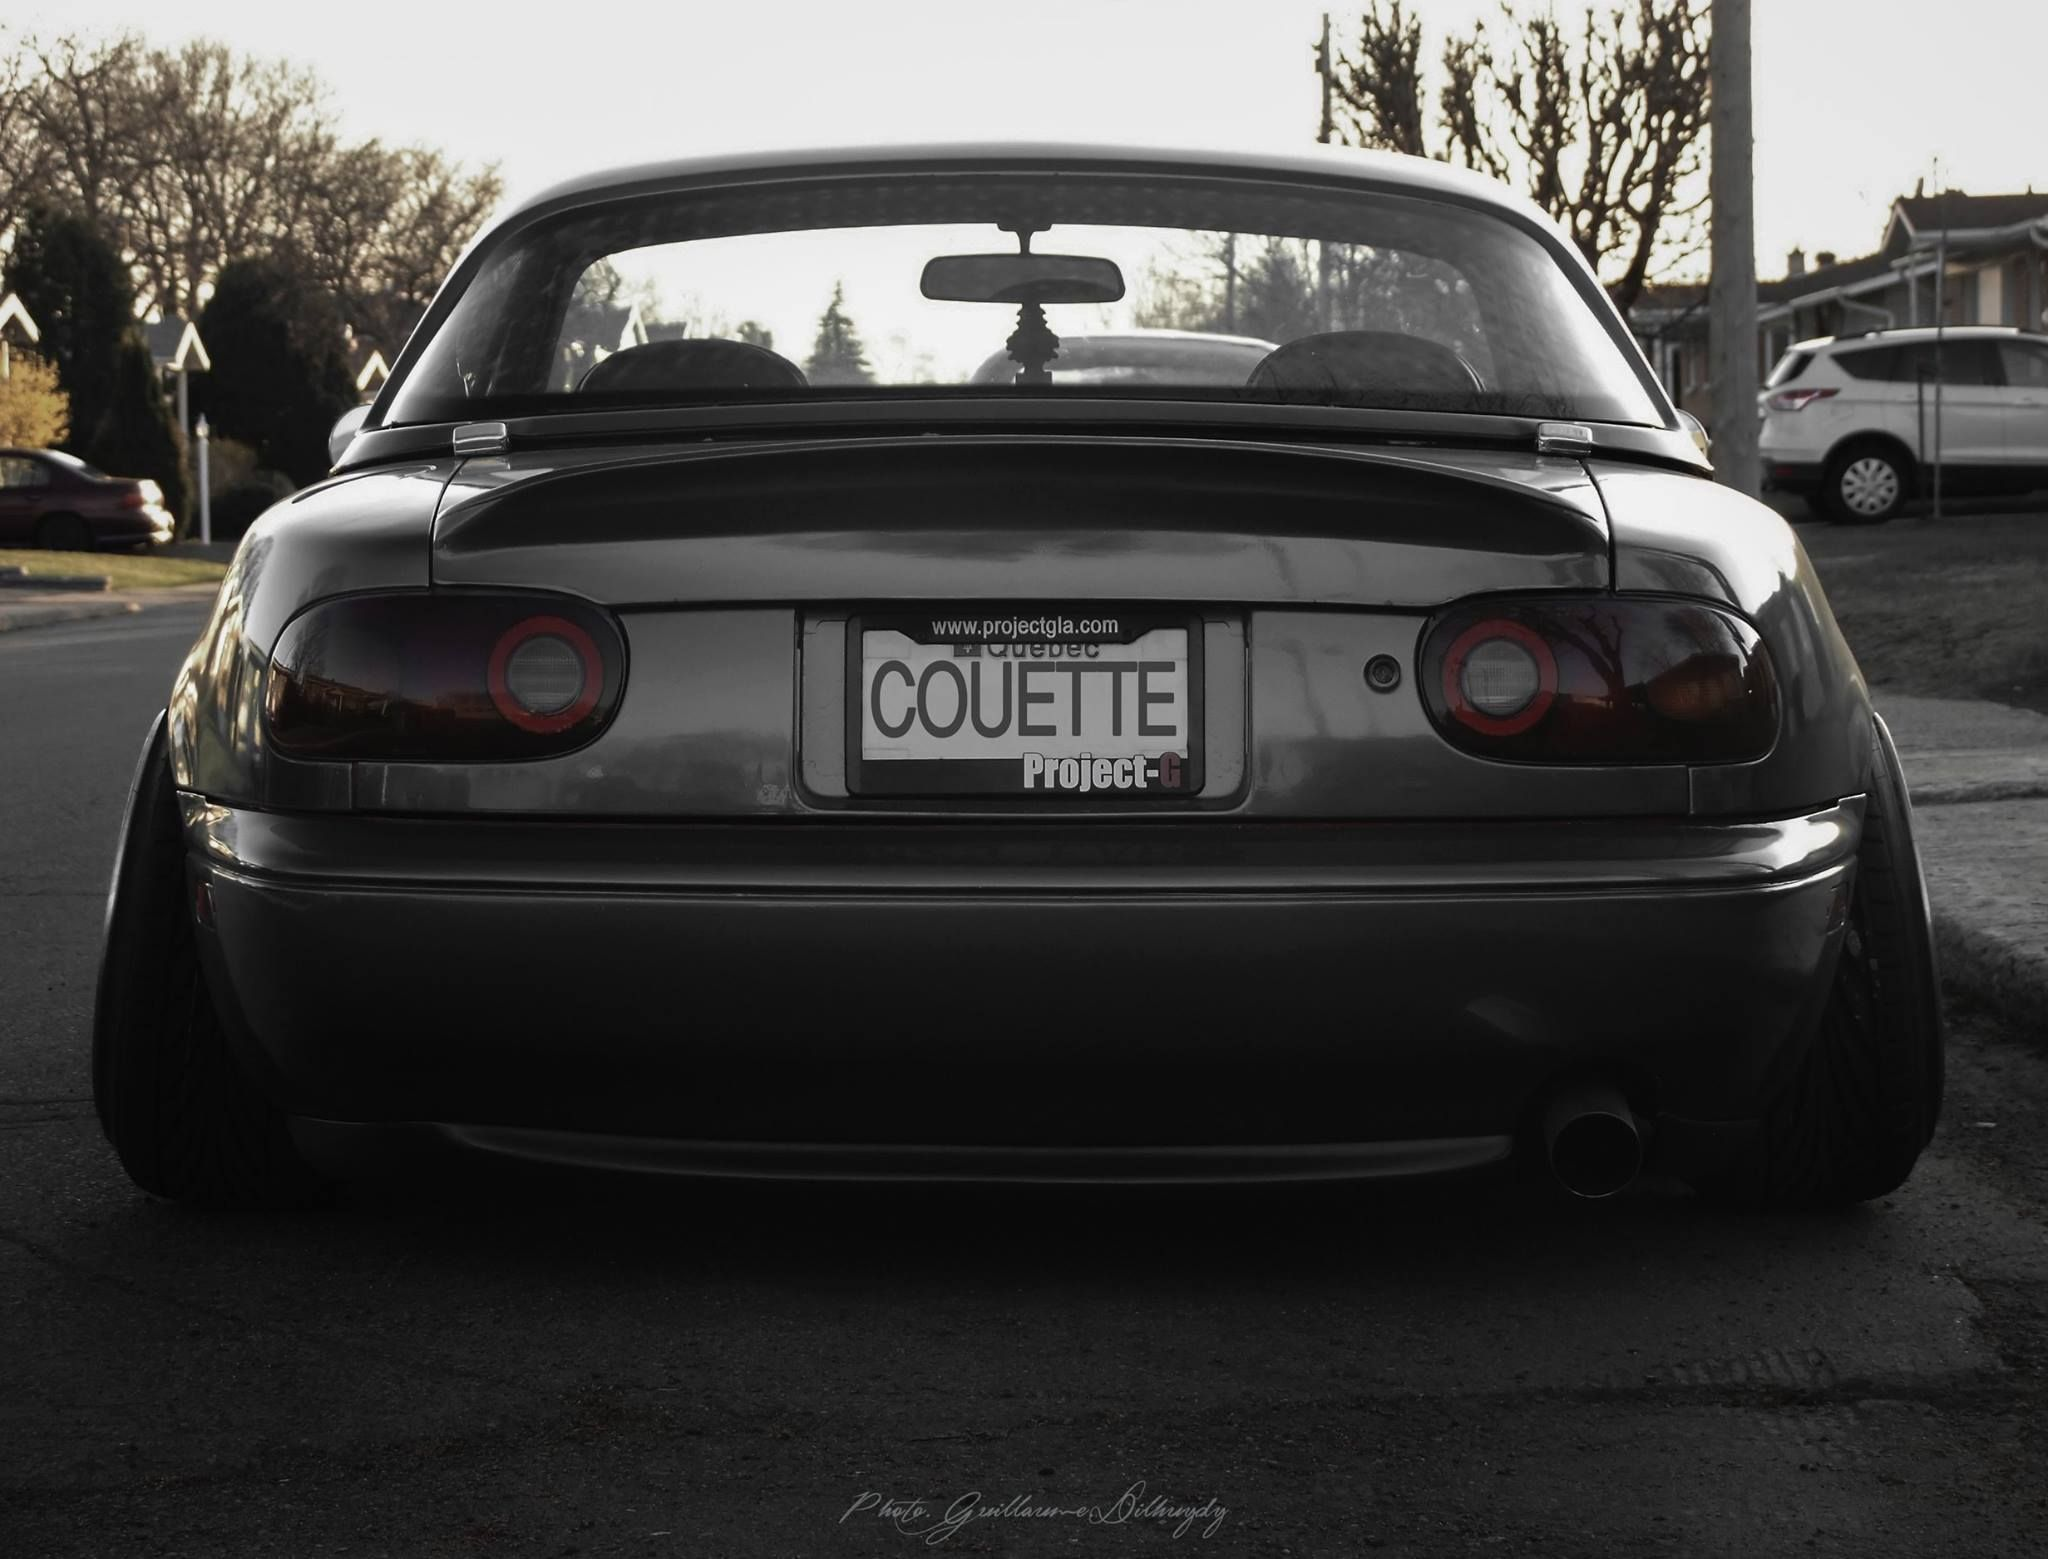 Miata #Selfie! Share Your Best #MazdaSelfie With Us, And Weu0027ll Repin Our  Favorites! Pinned By Http://FlanaganMotors.com   MXLIFE   Pinterest   Mazda,  Jdm ...